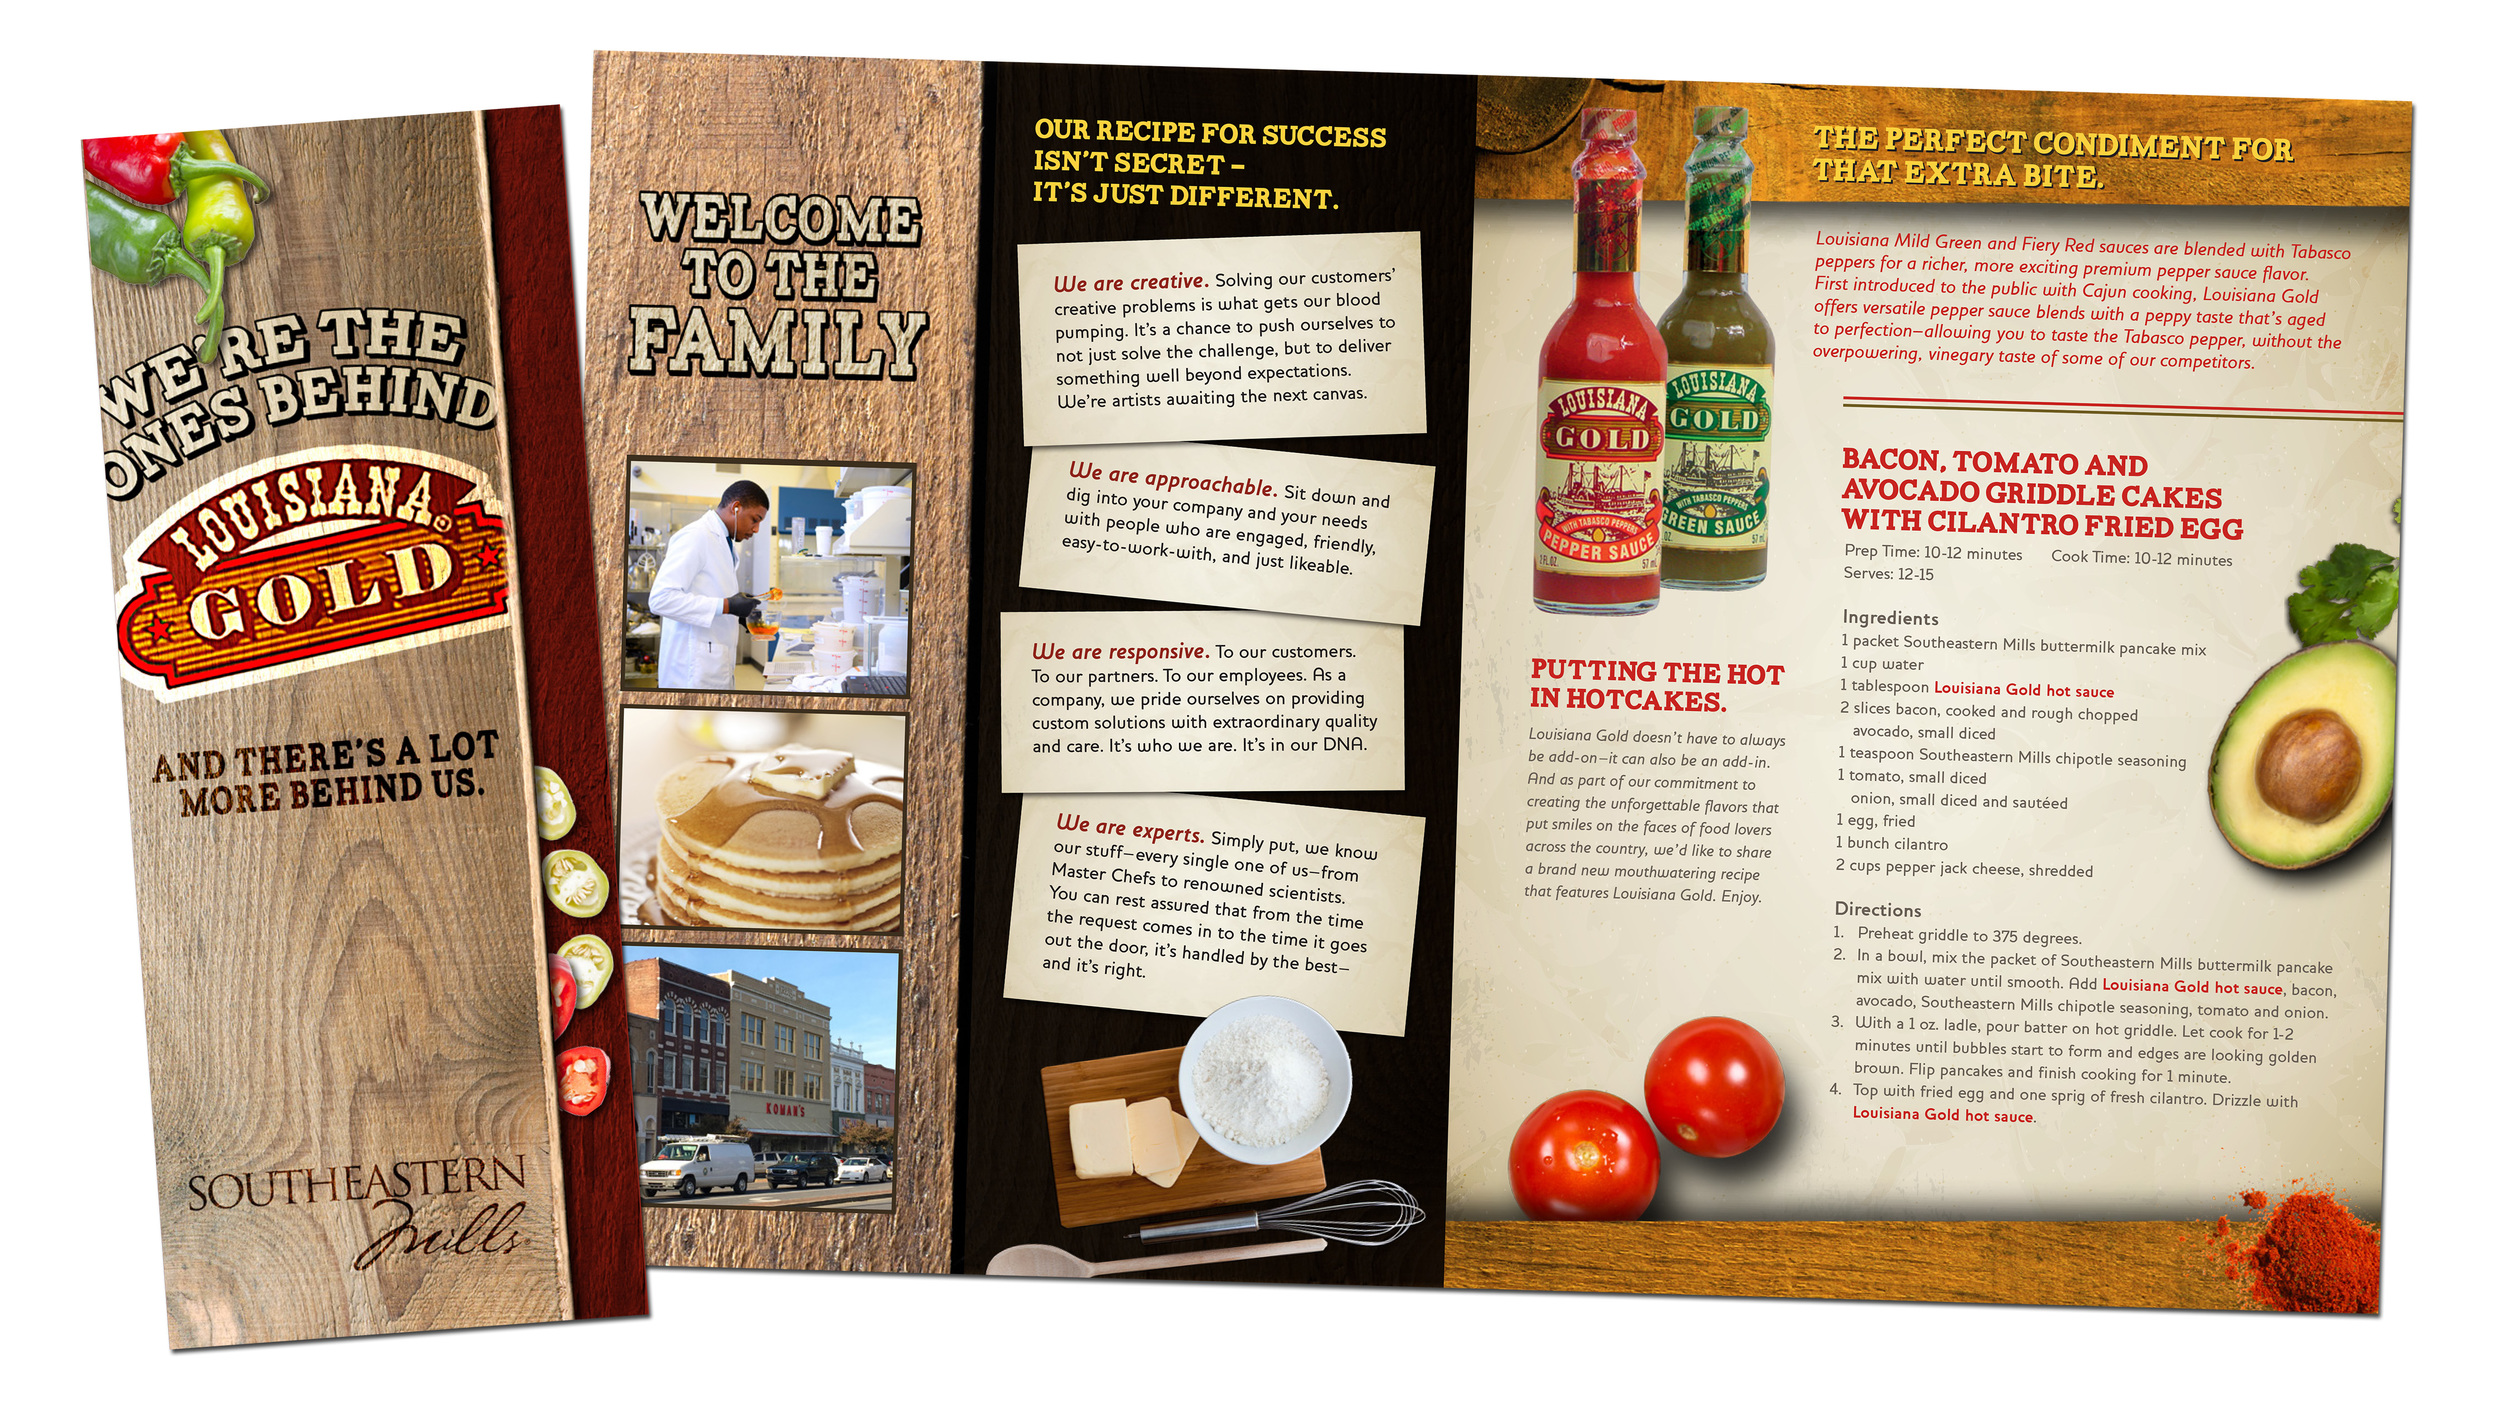 Louisiana Gold Hot Sauce Product Brochure